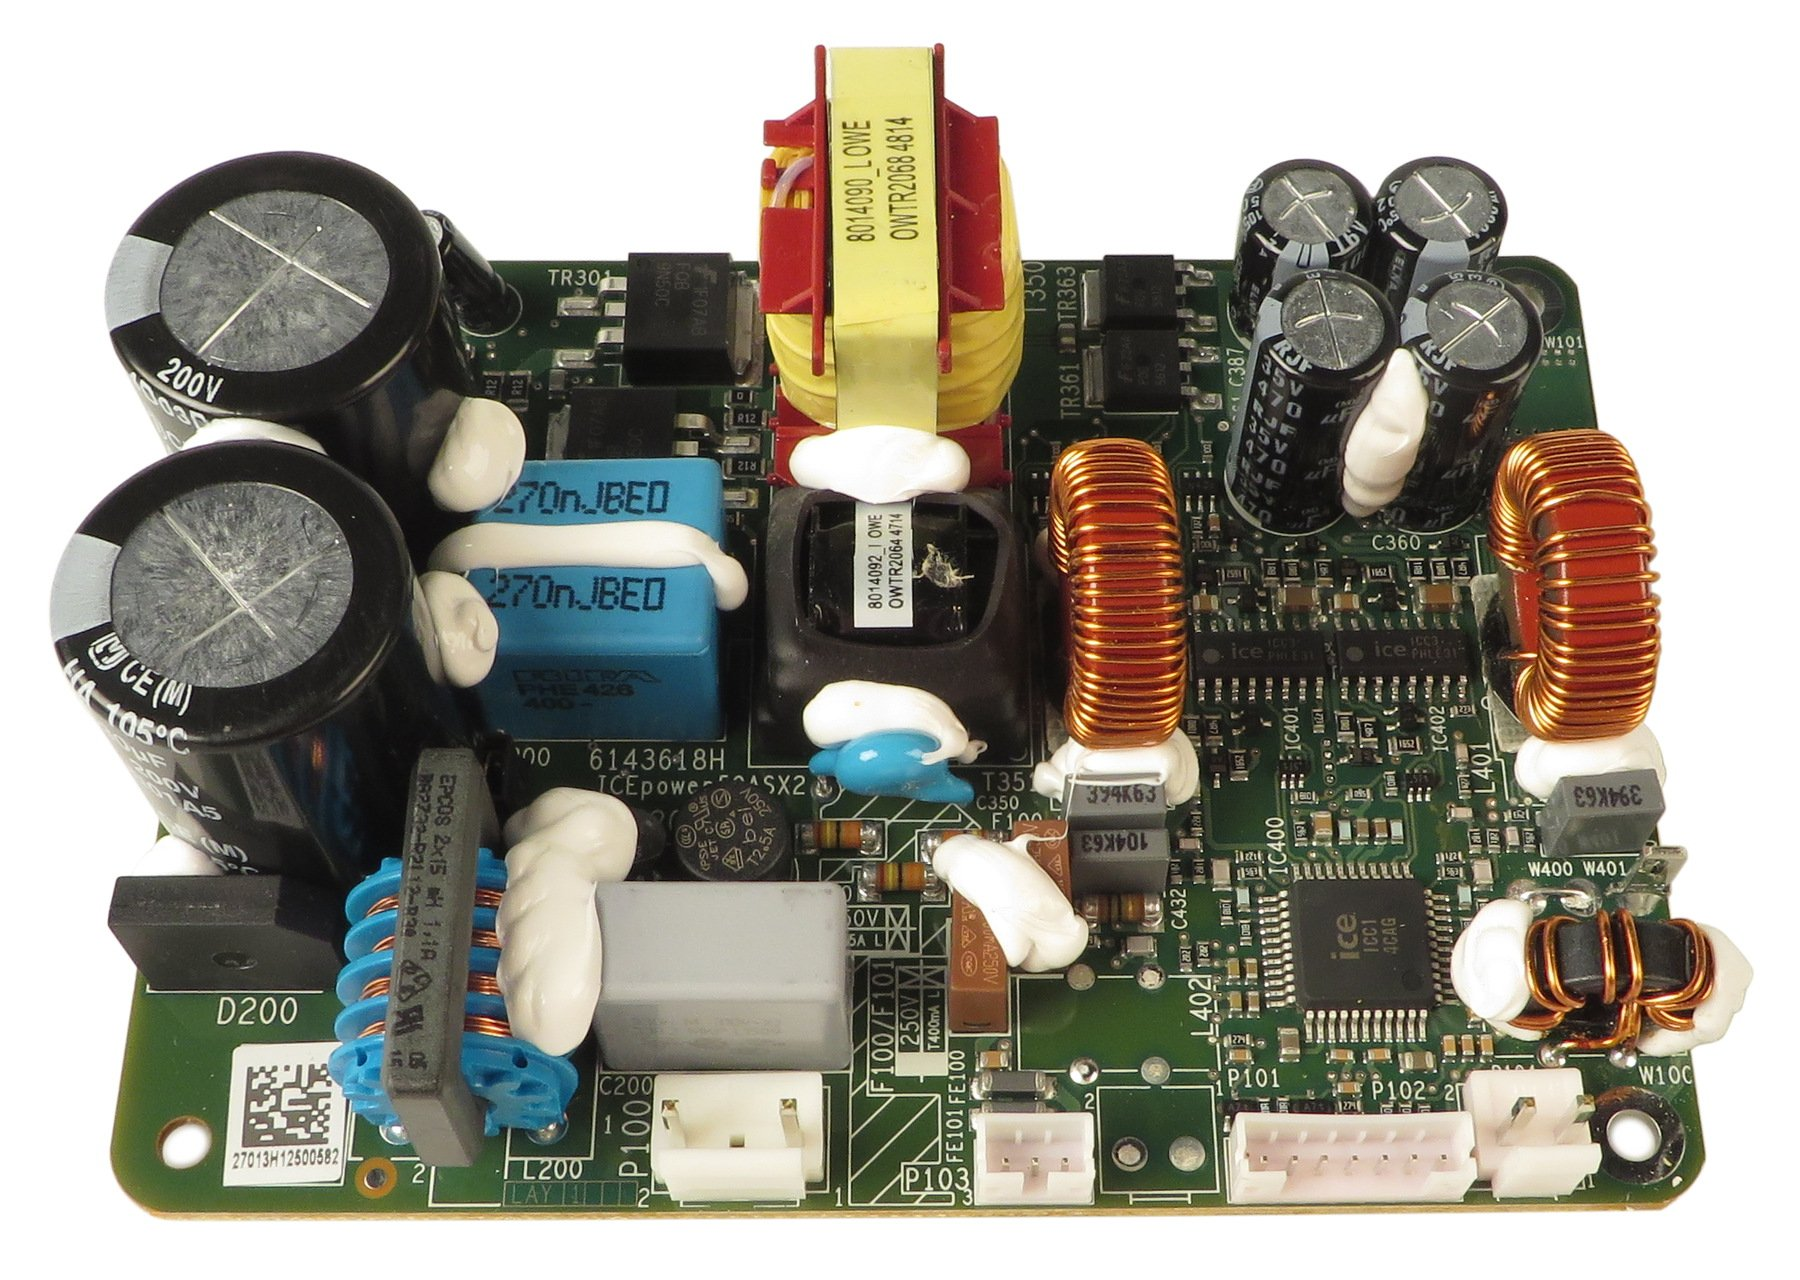 Power Amp PCB for MB200, MB150, MB112